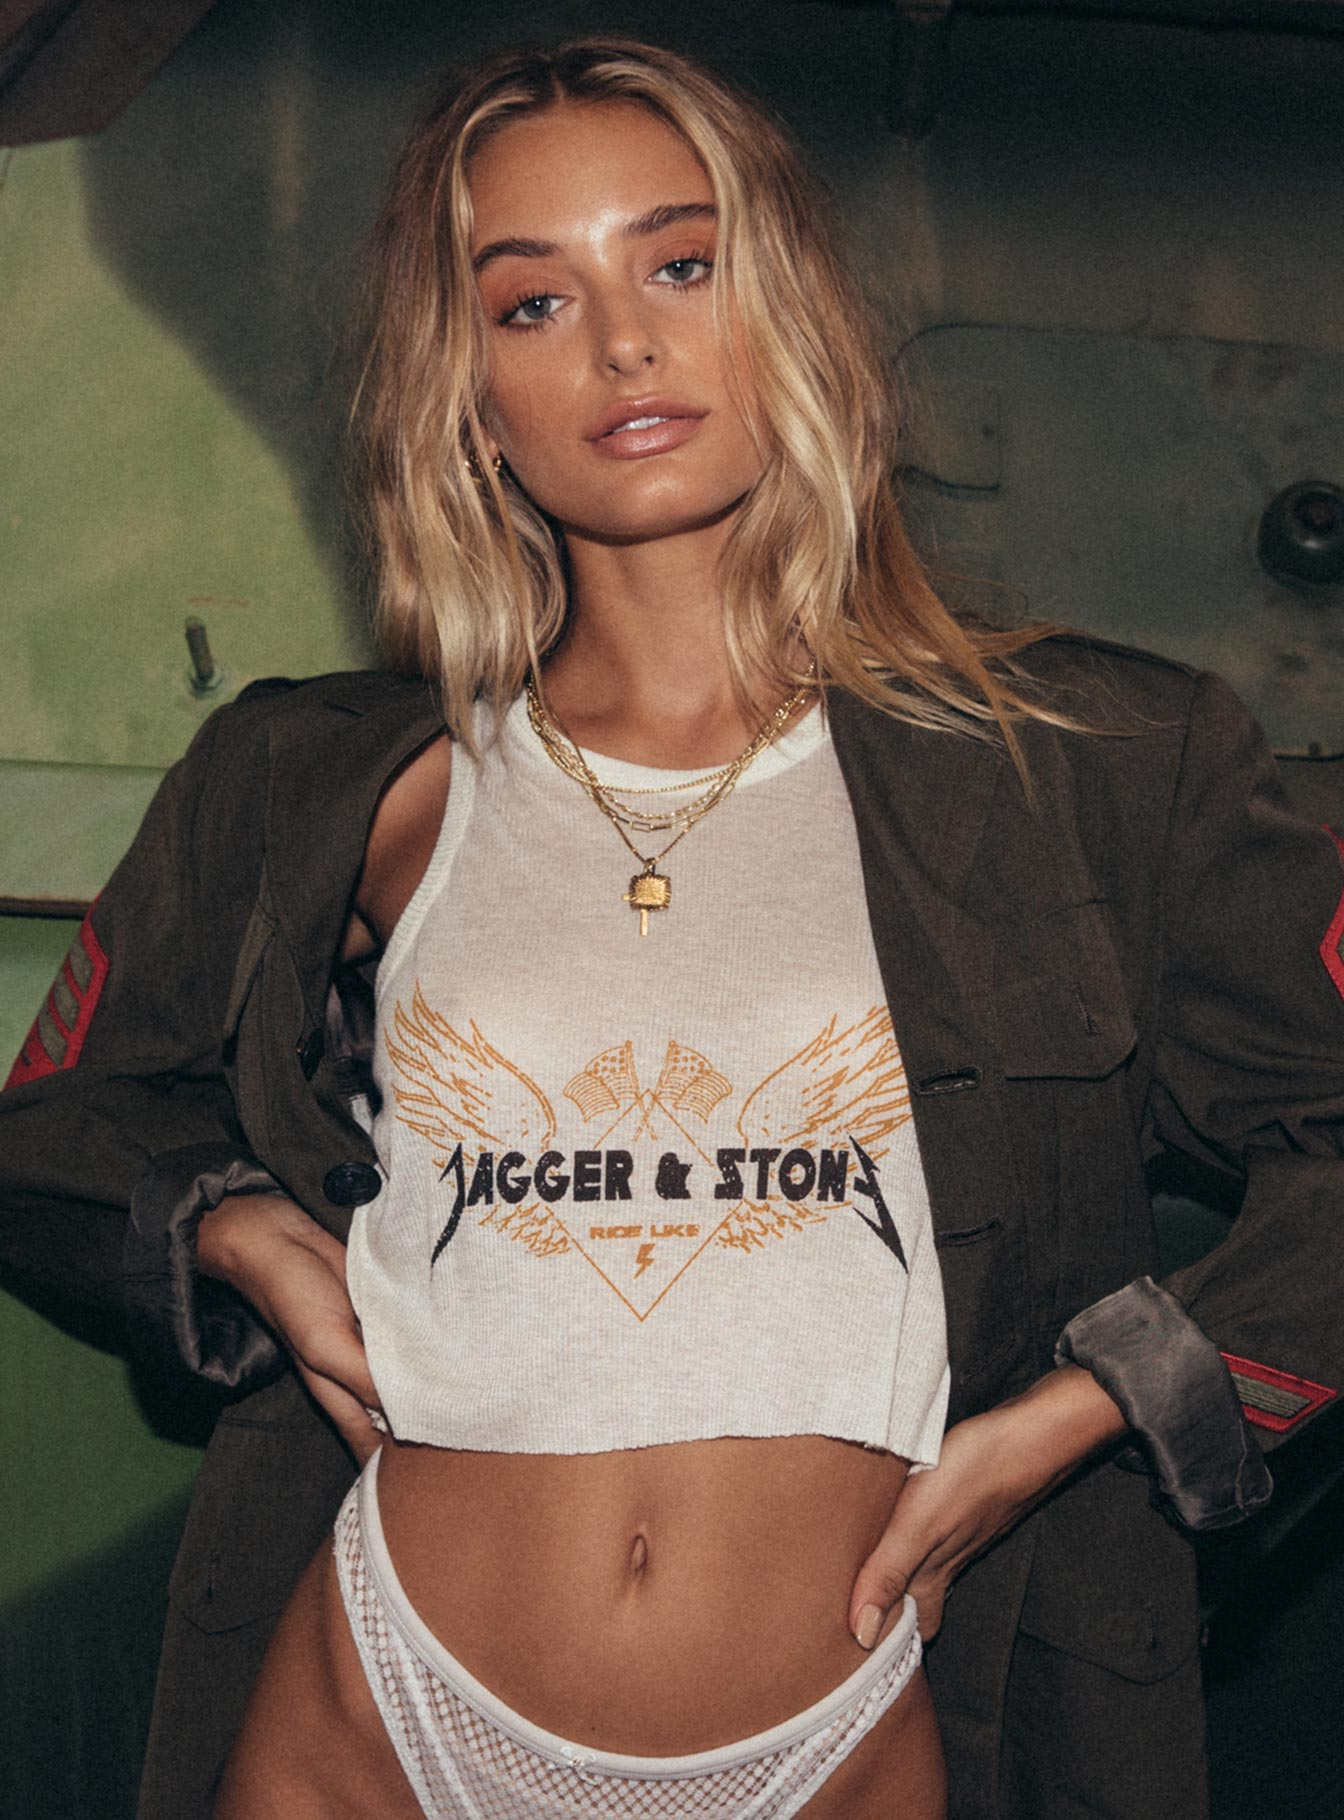 Jagger & Stone The Angel Energy Tank